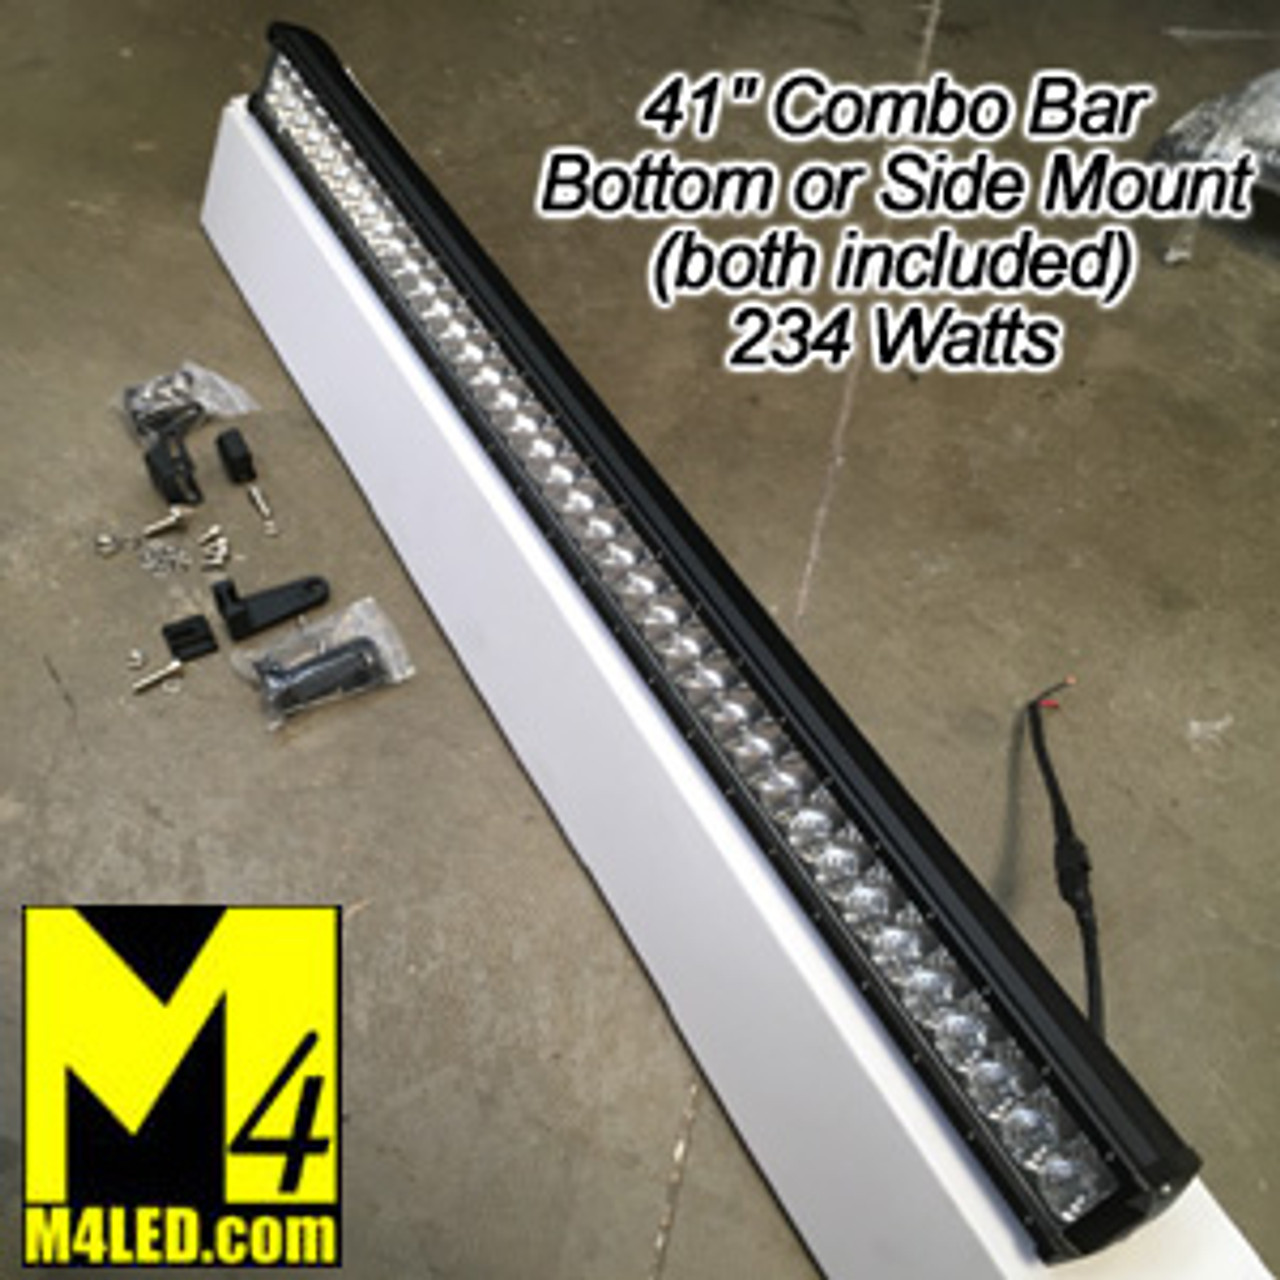 "41"" 234W Bottom or Side Mount CREE LED Chips - Combo Pattern"